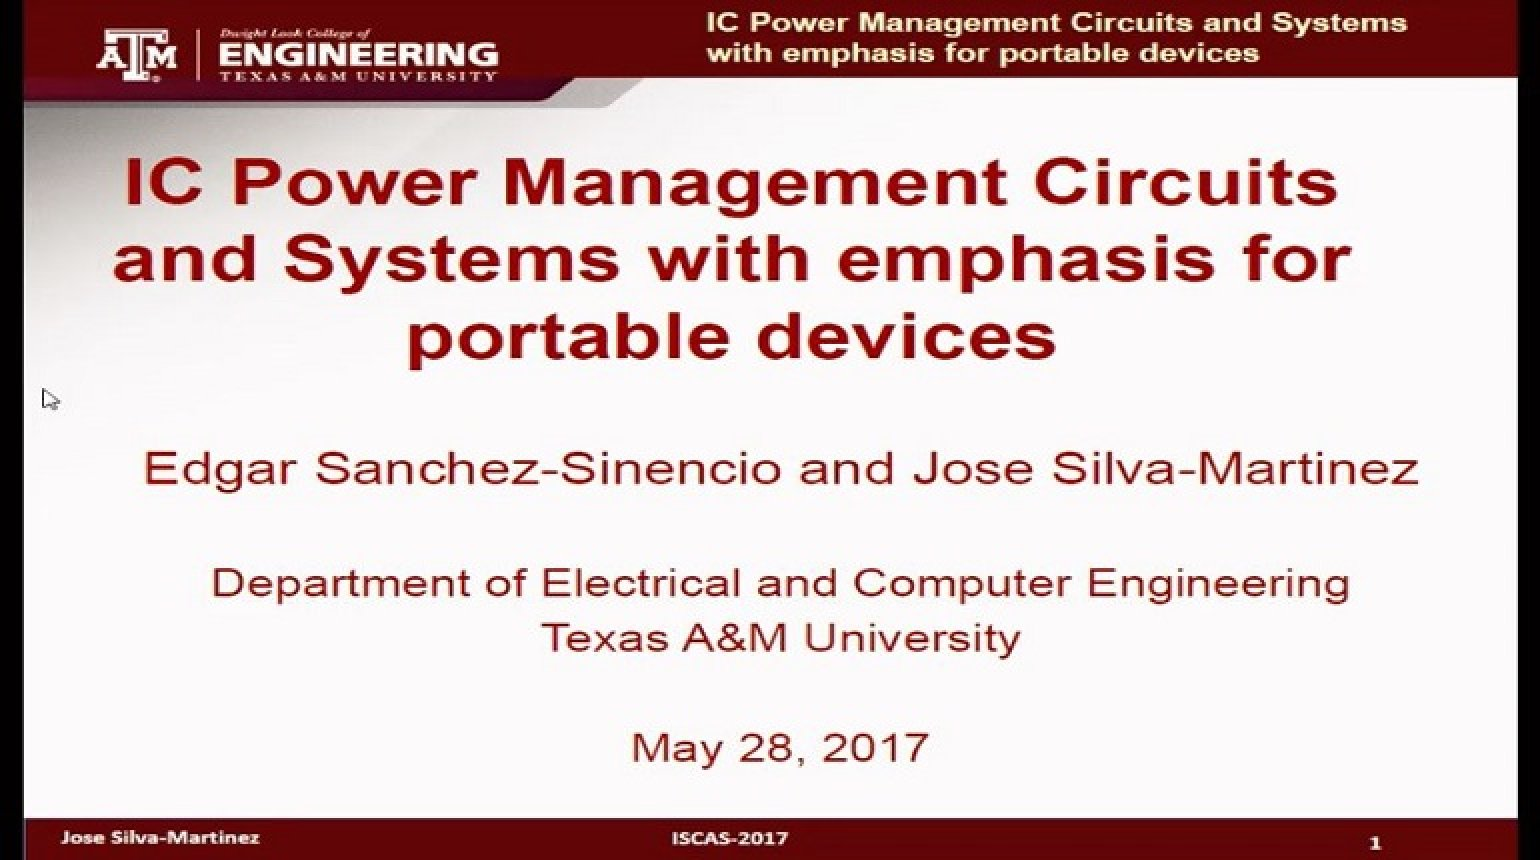 IC Power Management Circuits and Systems with Emphasis for Portable Devices